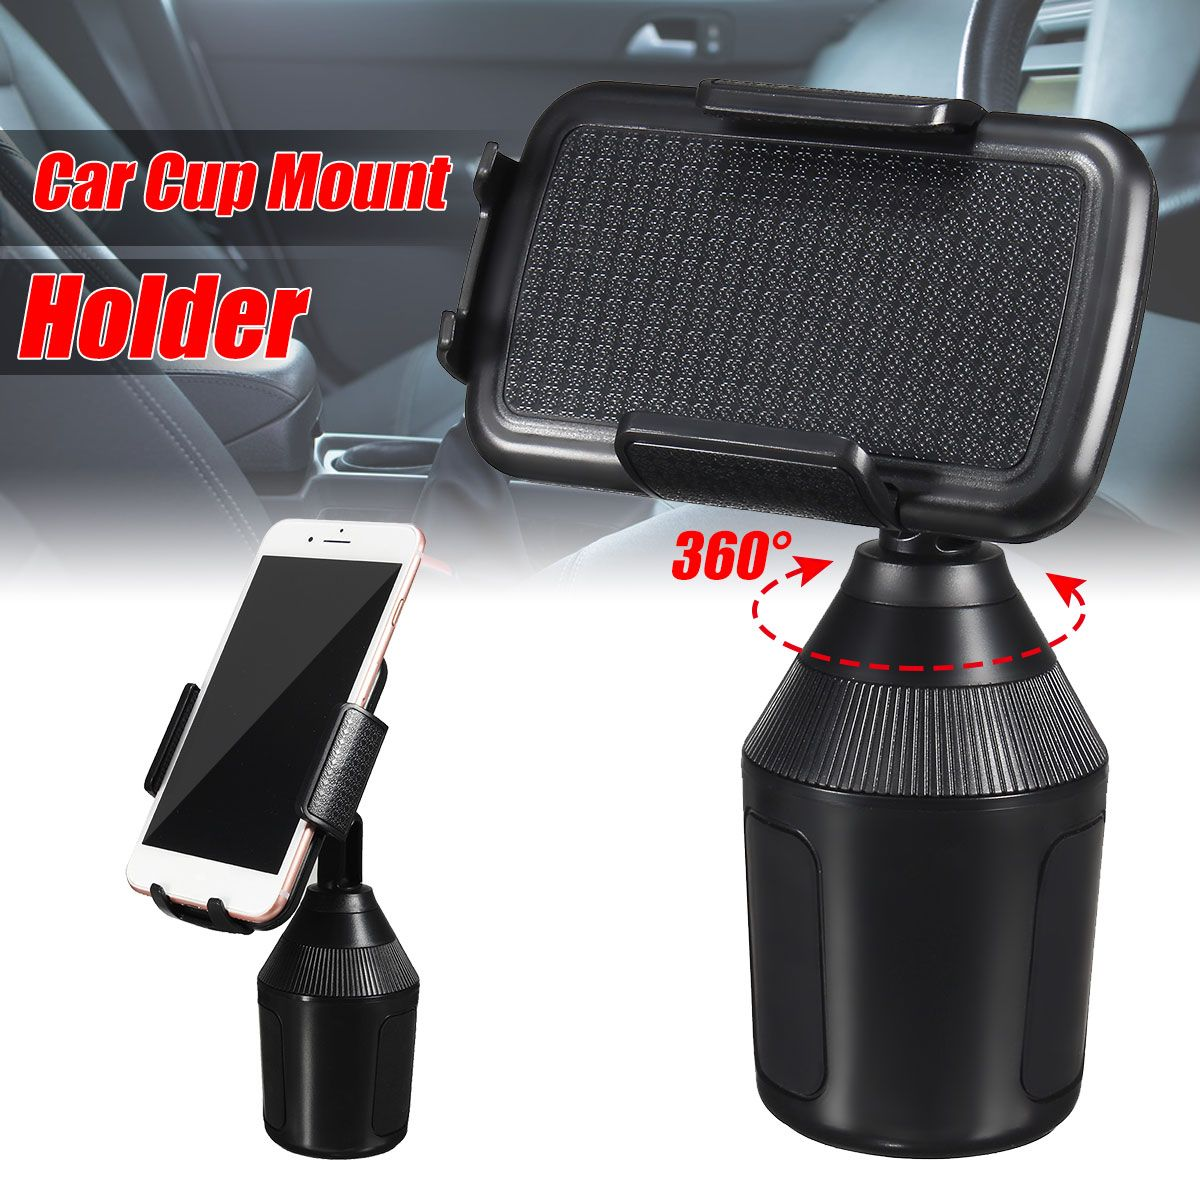 Cell Phone GPS Portable Stand Holder 360 Adjustable Mobile Phone Car Cup Holder Stand Cradle Mount Clip For iPhone For UMI23